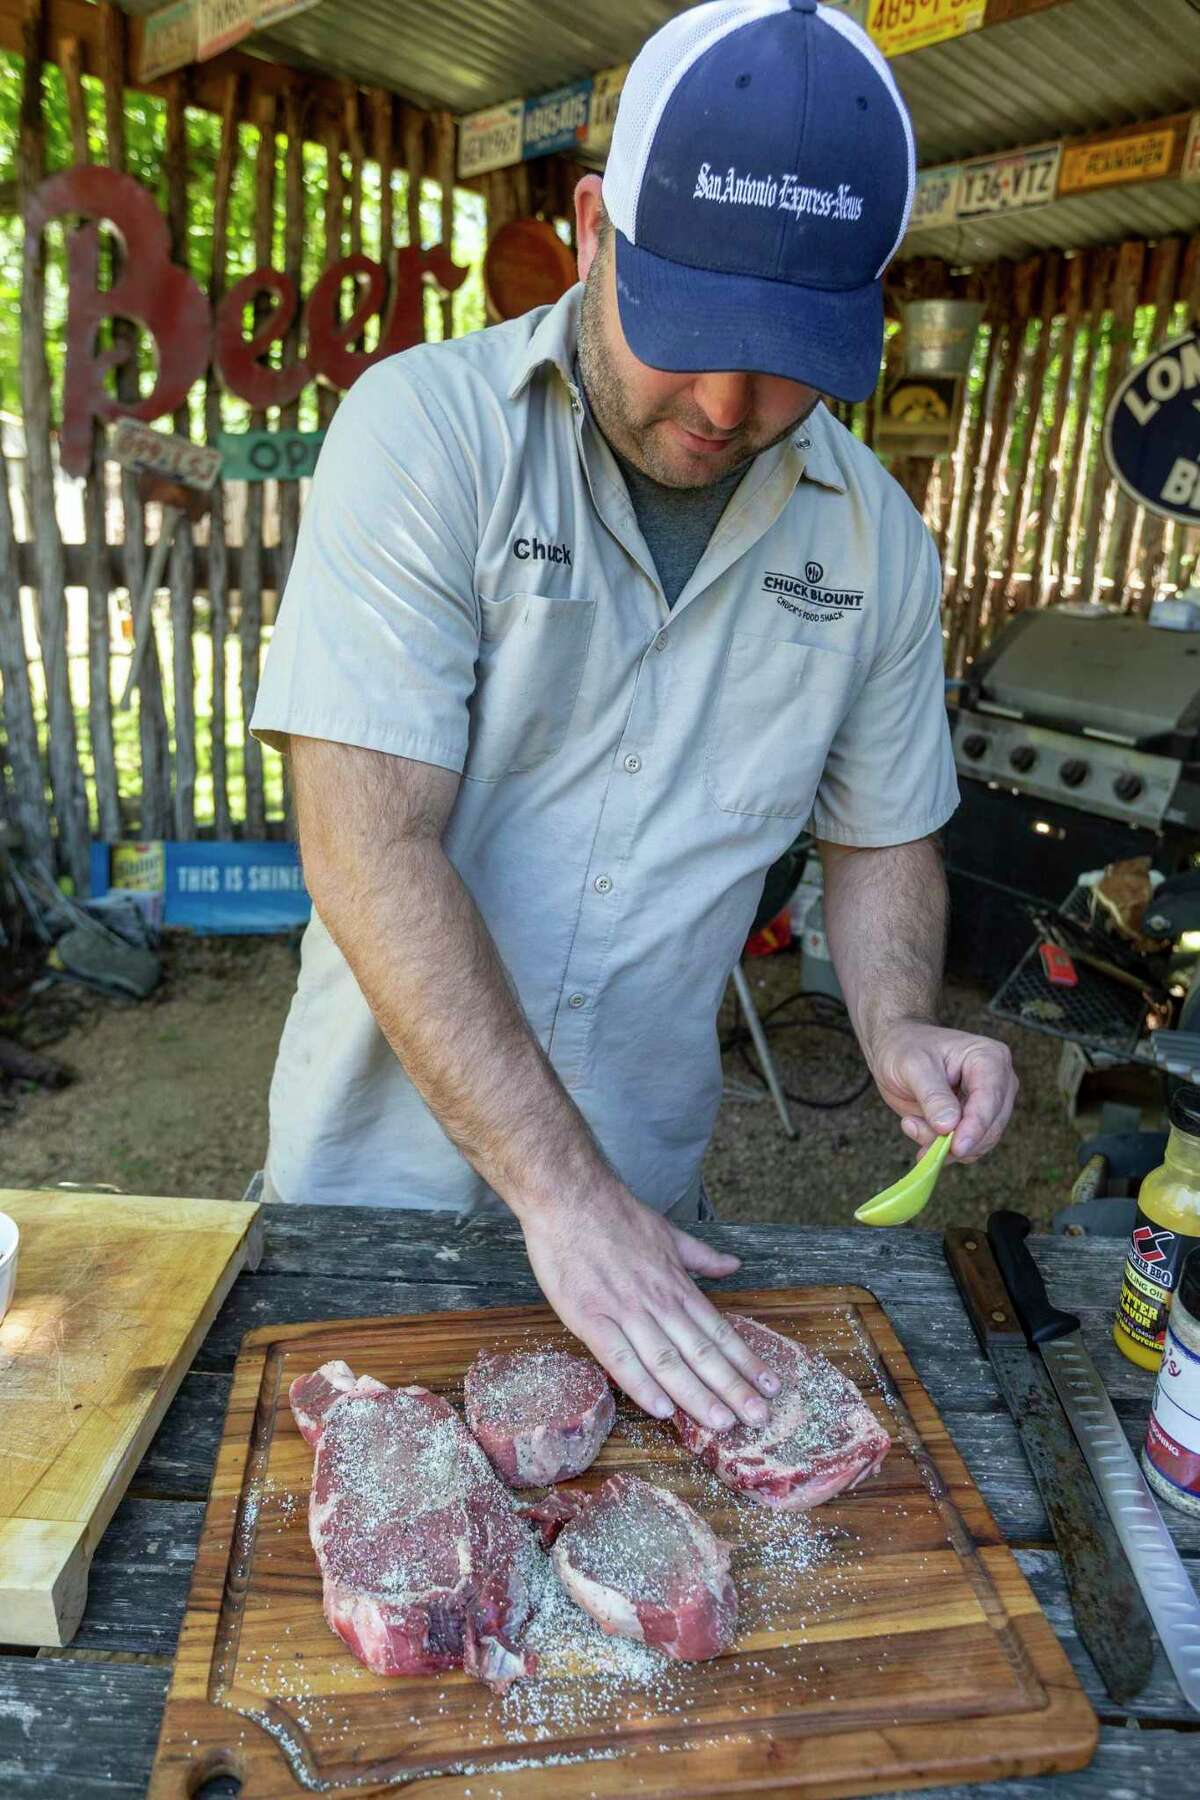 Chuck Blount seasons select, choice and prime steaks at his Food Shack with an equal mixture of salt and pepper.